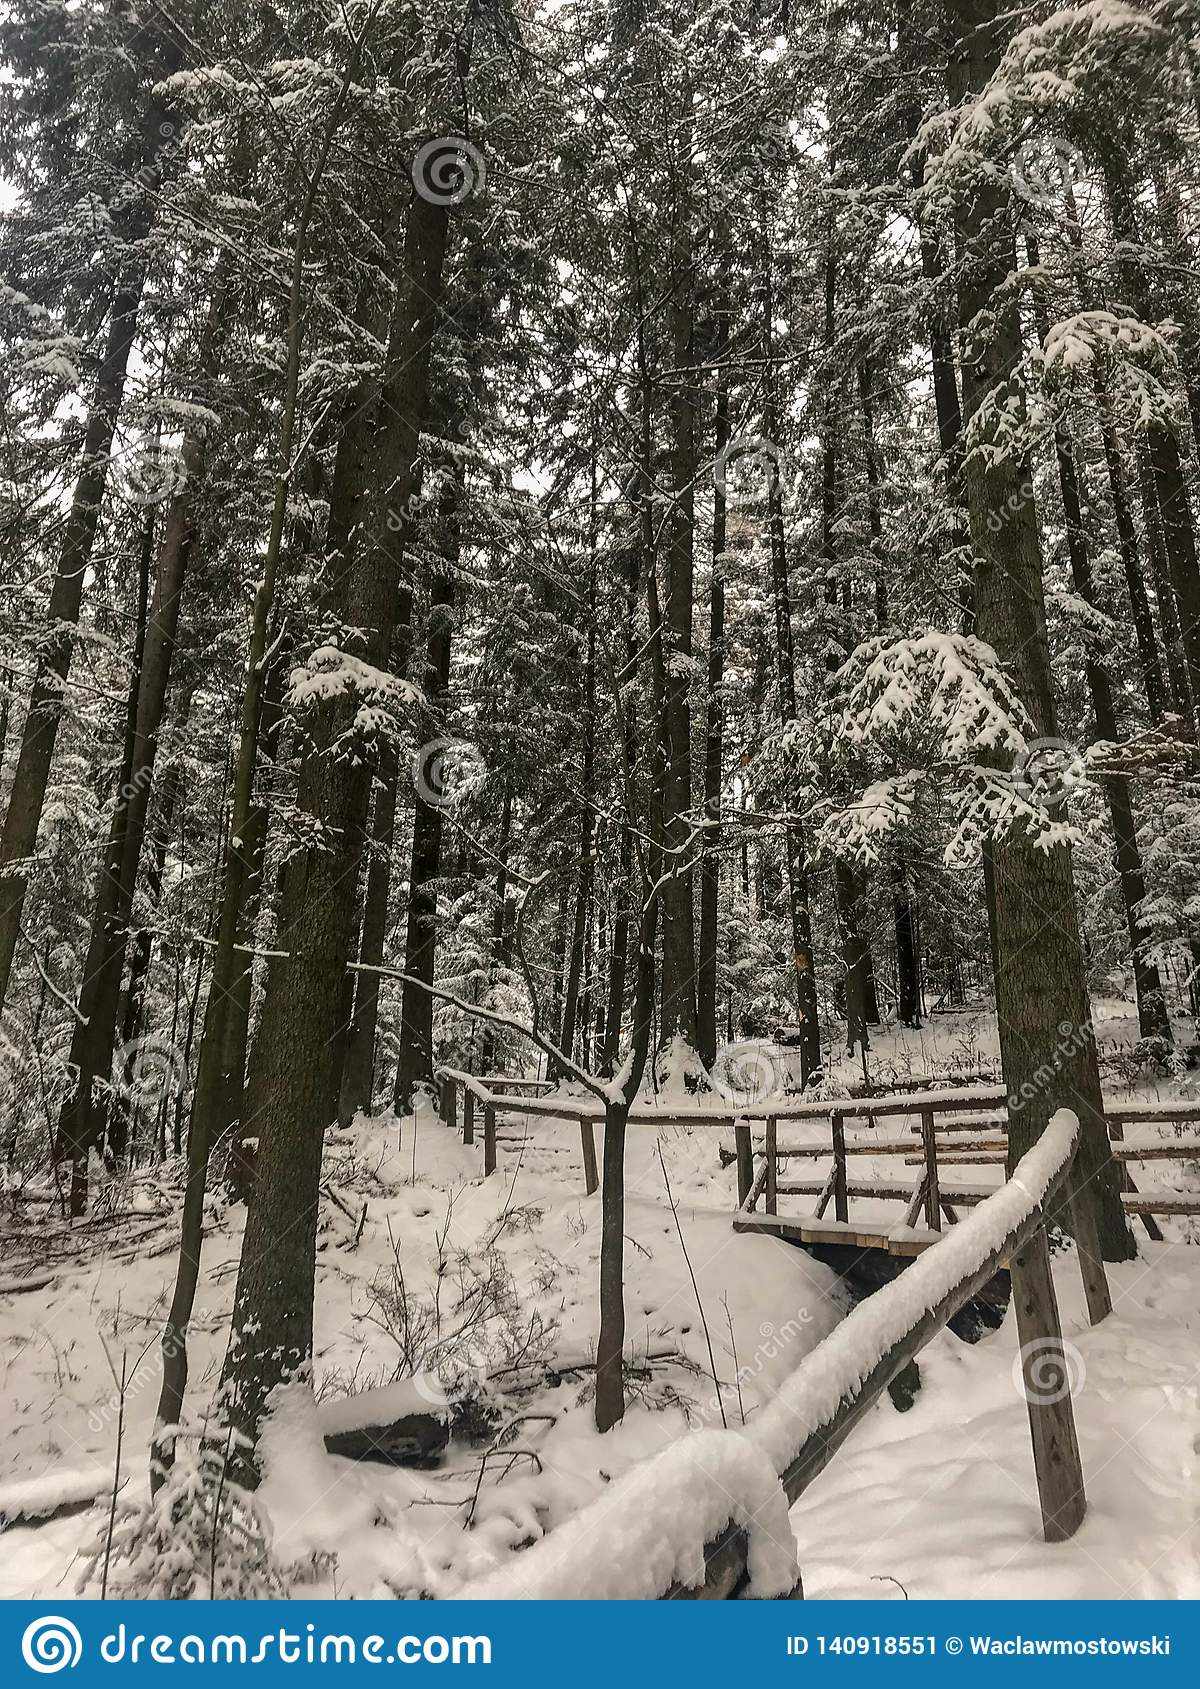 Walking path covered in snow inside forest with snow covered pine trees